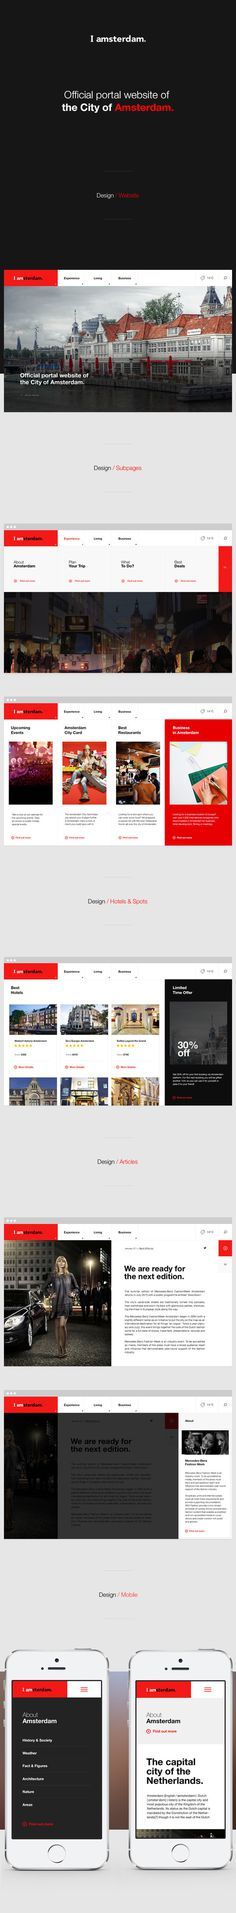 iAmsterdam on Behance #menu